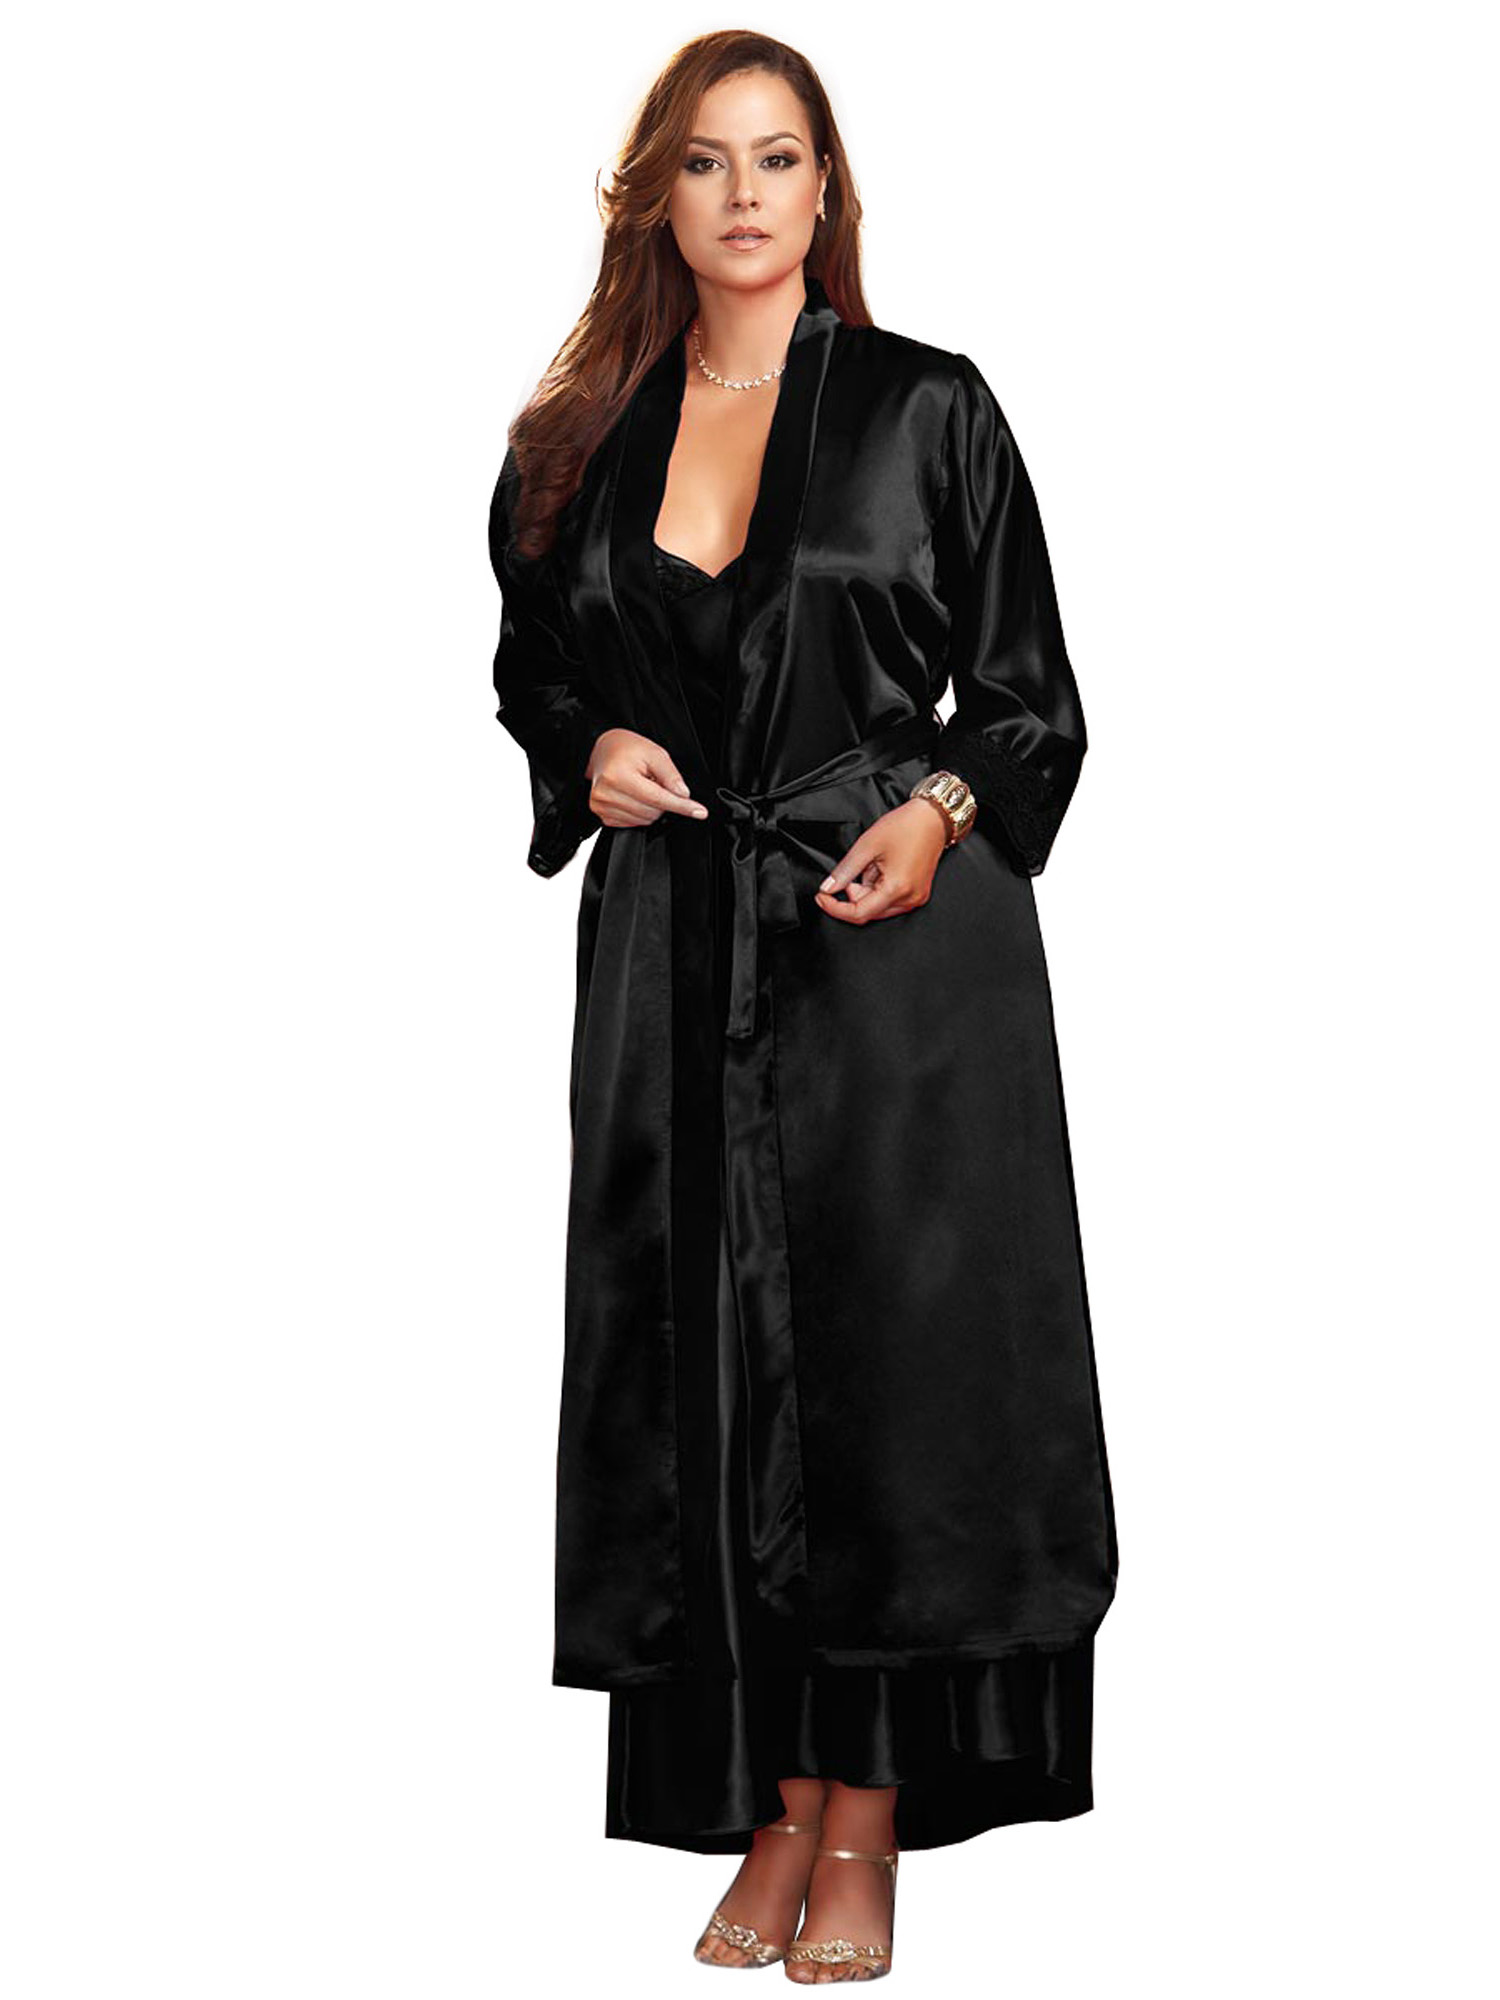 Shop Online at dirtyinstalzonevx6.ga for the Latest Plus Size Robes & Pajamas for Women. FREE SHIPPING AVAILABLE!